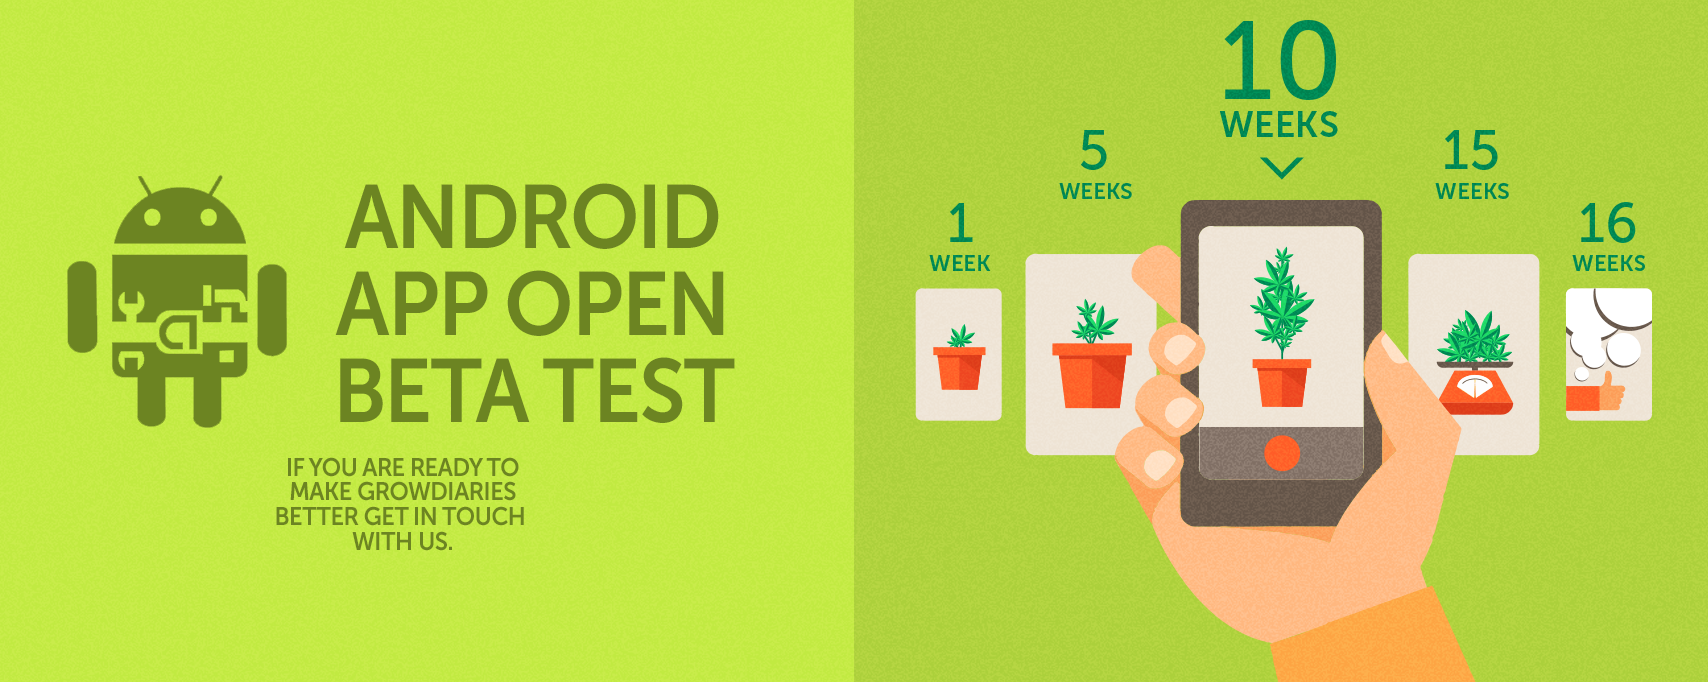 android app open beta test growdiaries p3